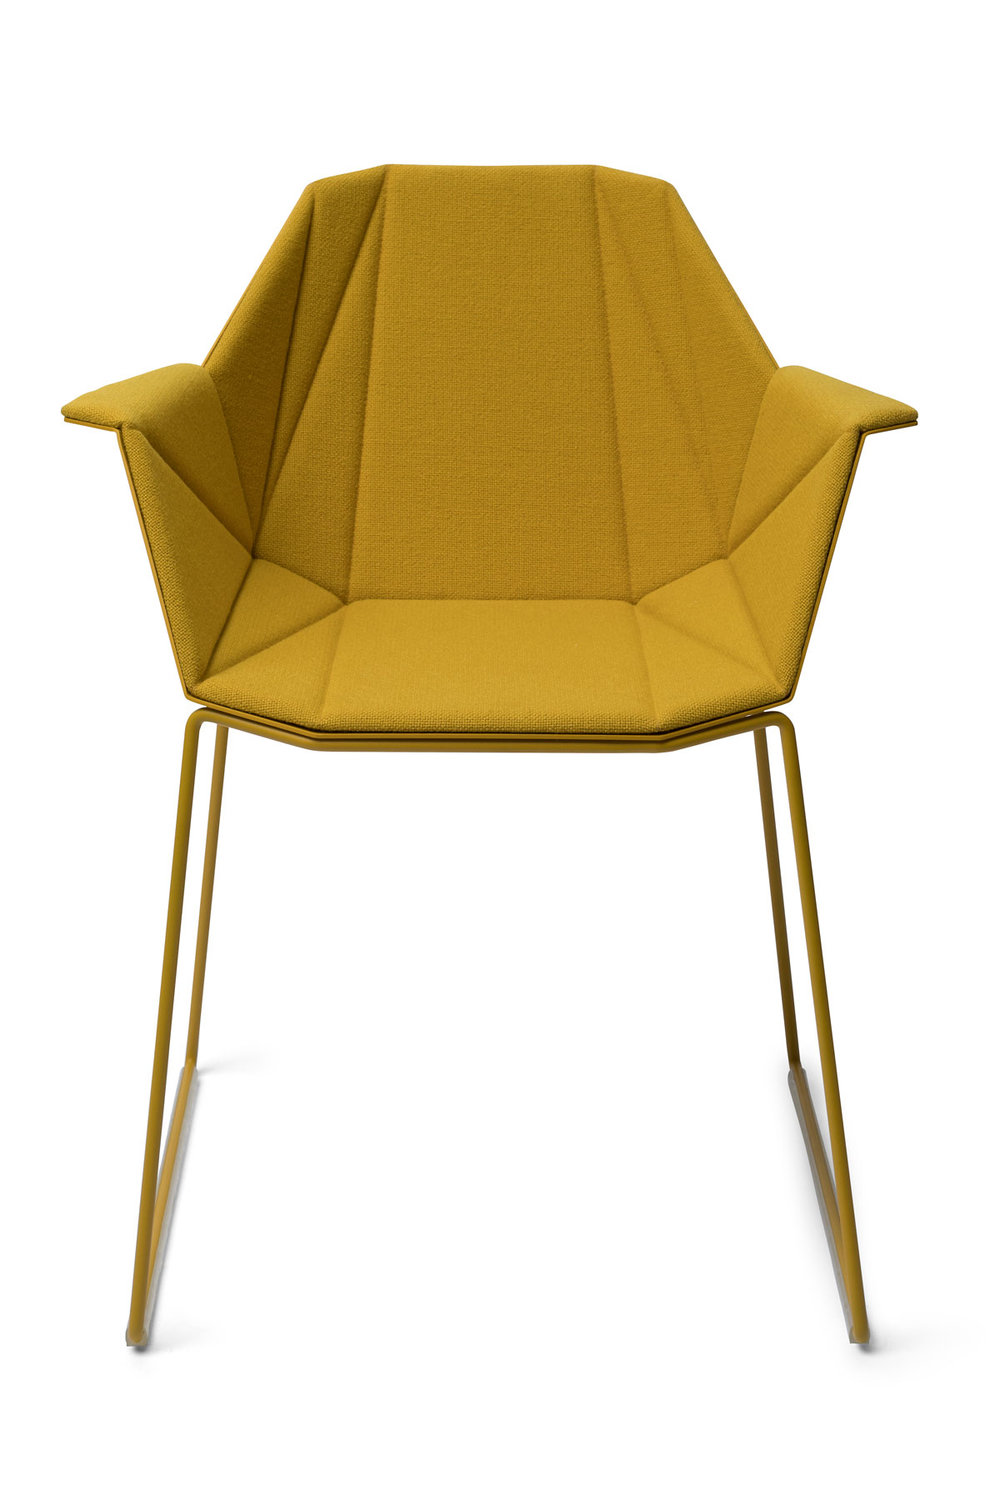 Alumni-Sledge-ochreous-yellow-upholstered_front.jpg